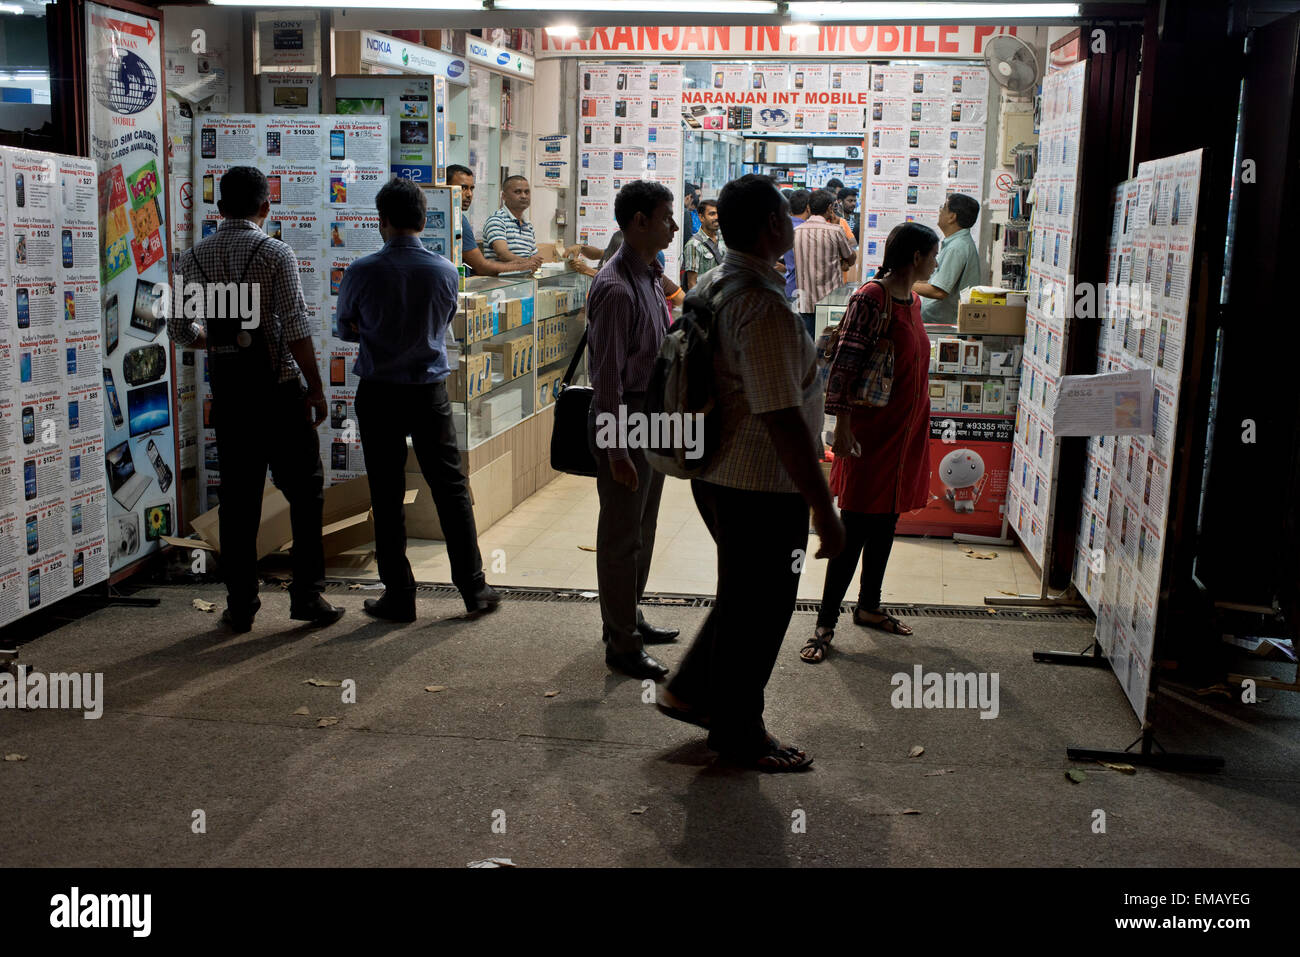 Mobile phone shop in Little India, Singapore Stock Photo